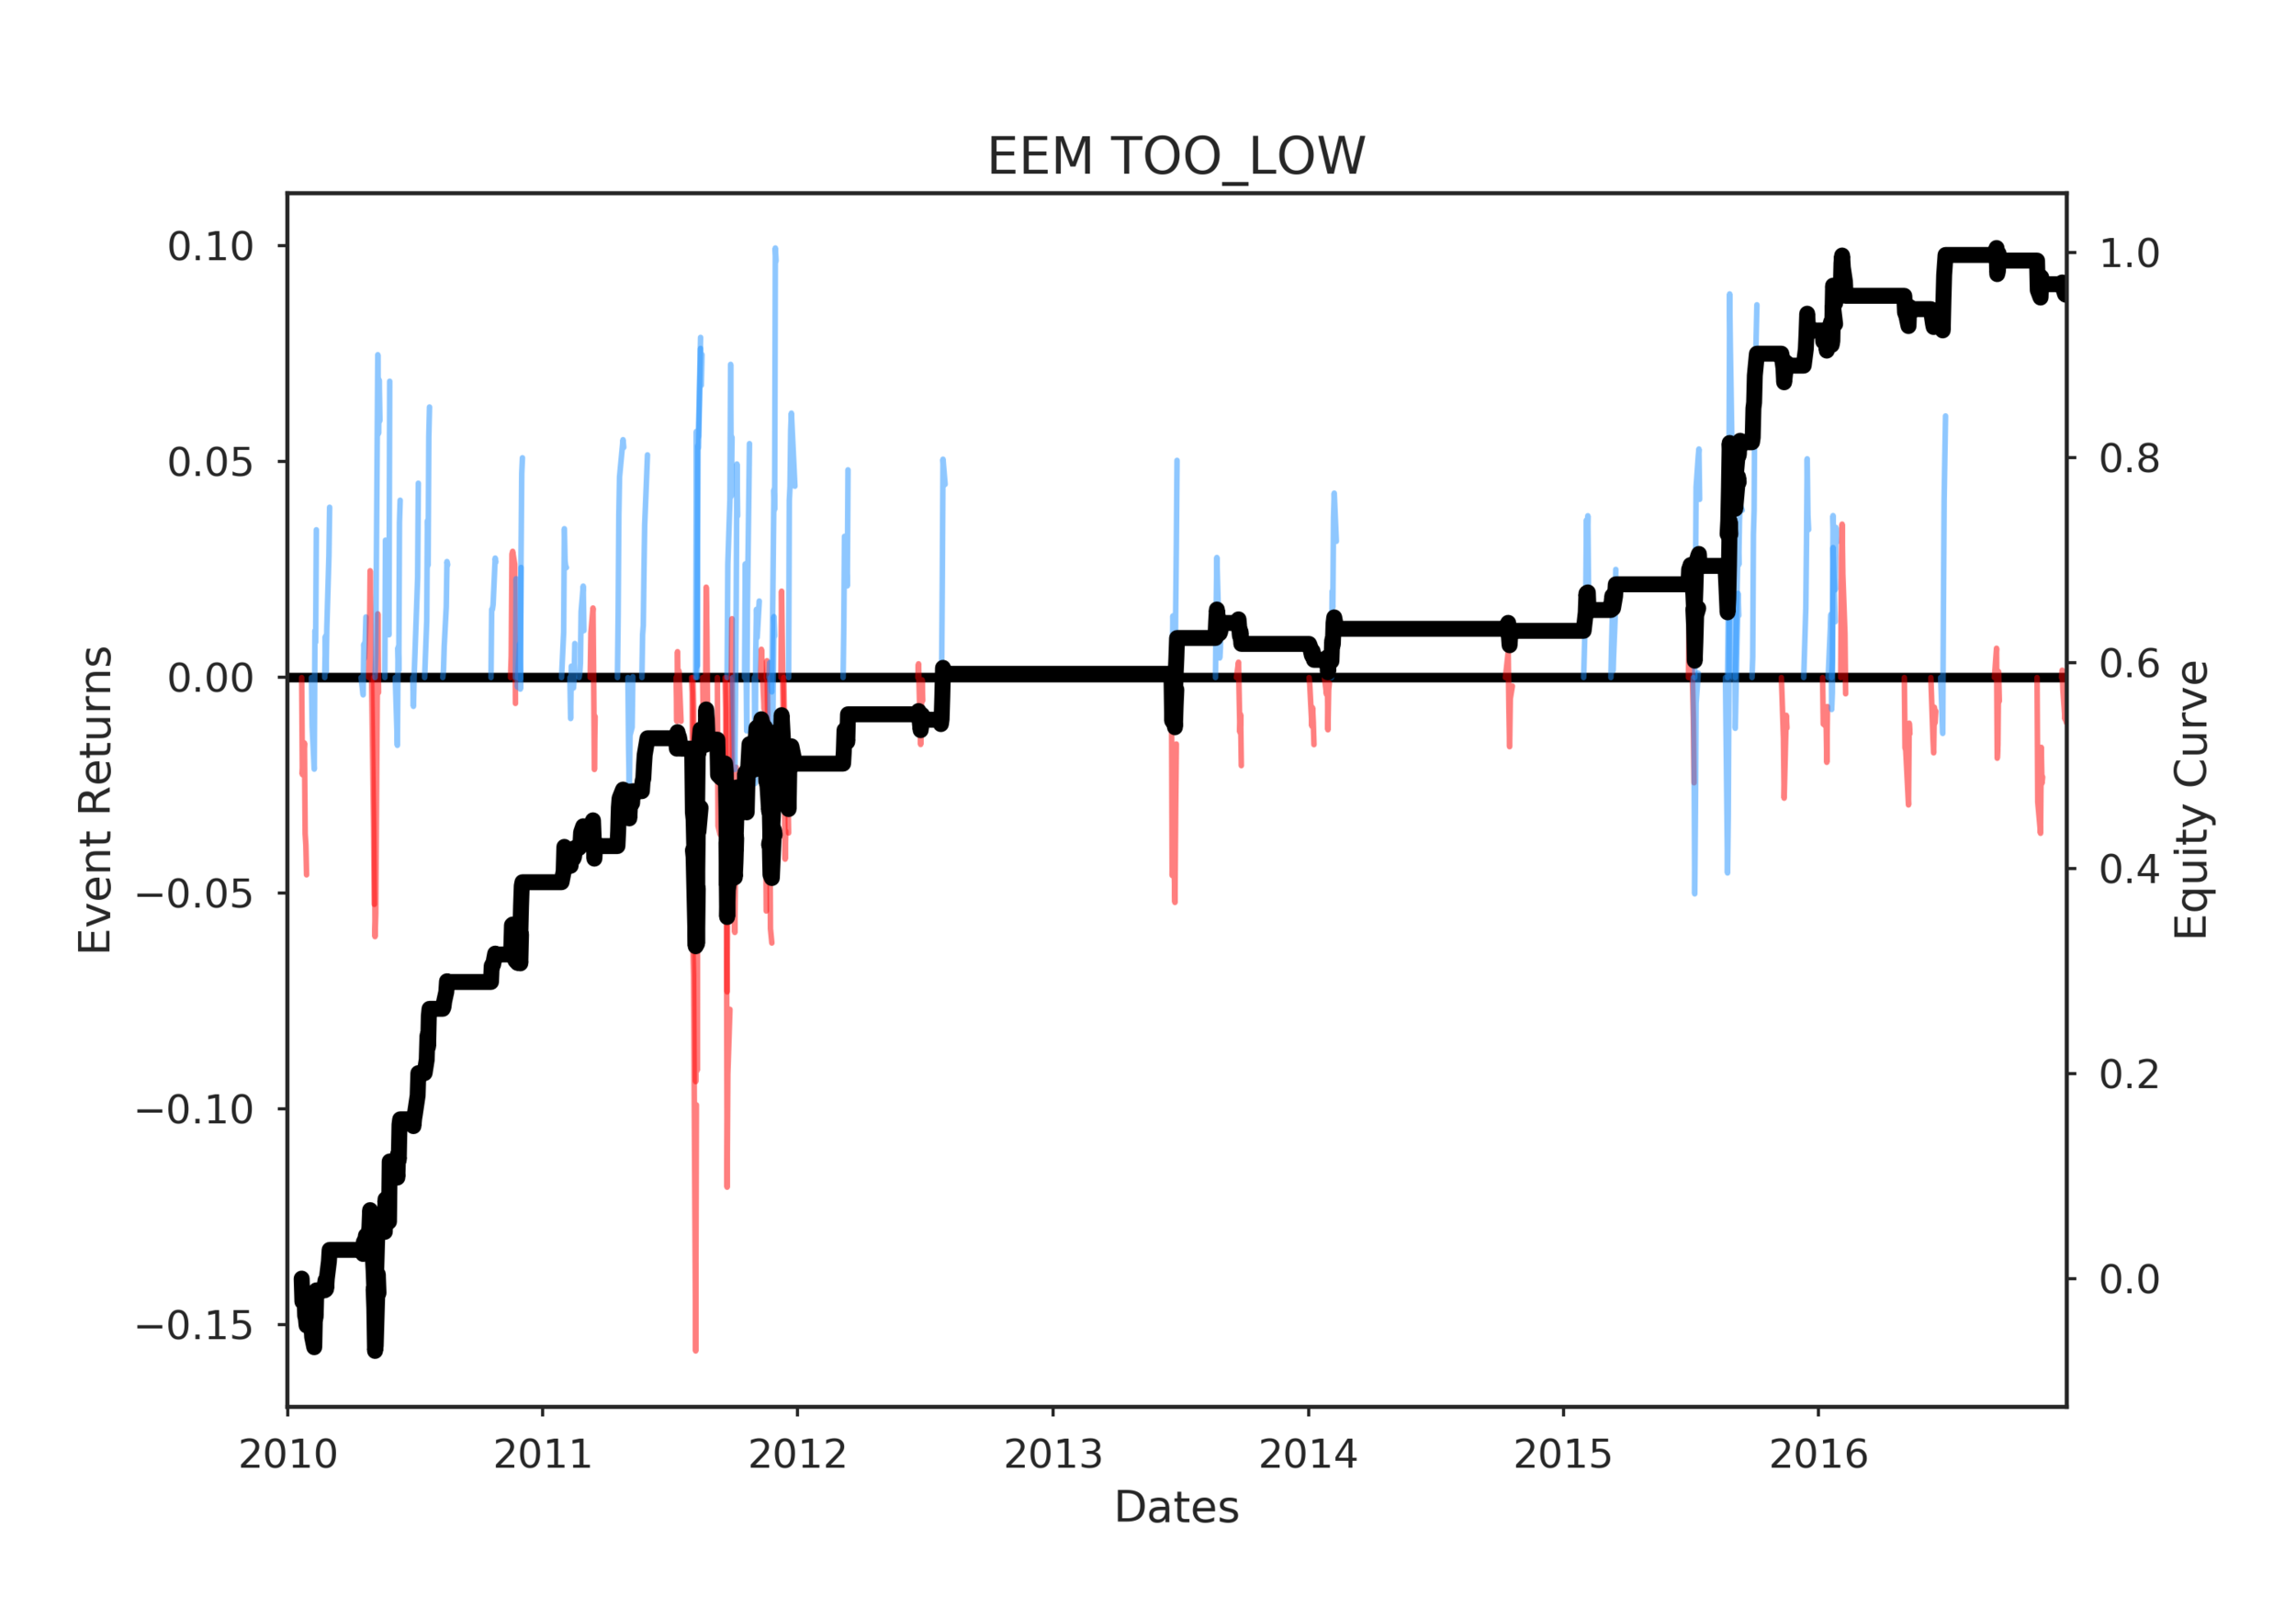 EEM TOO_LOW post events timeline 2017-04-04 17:16:36.357314.png